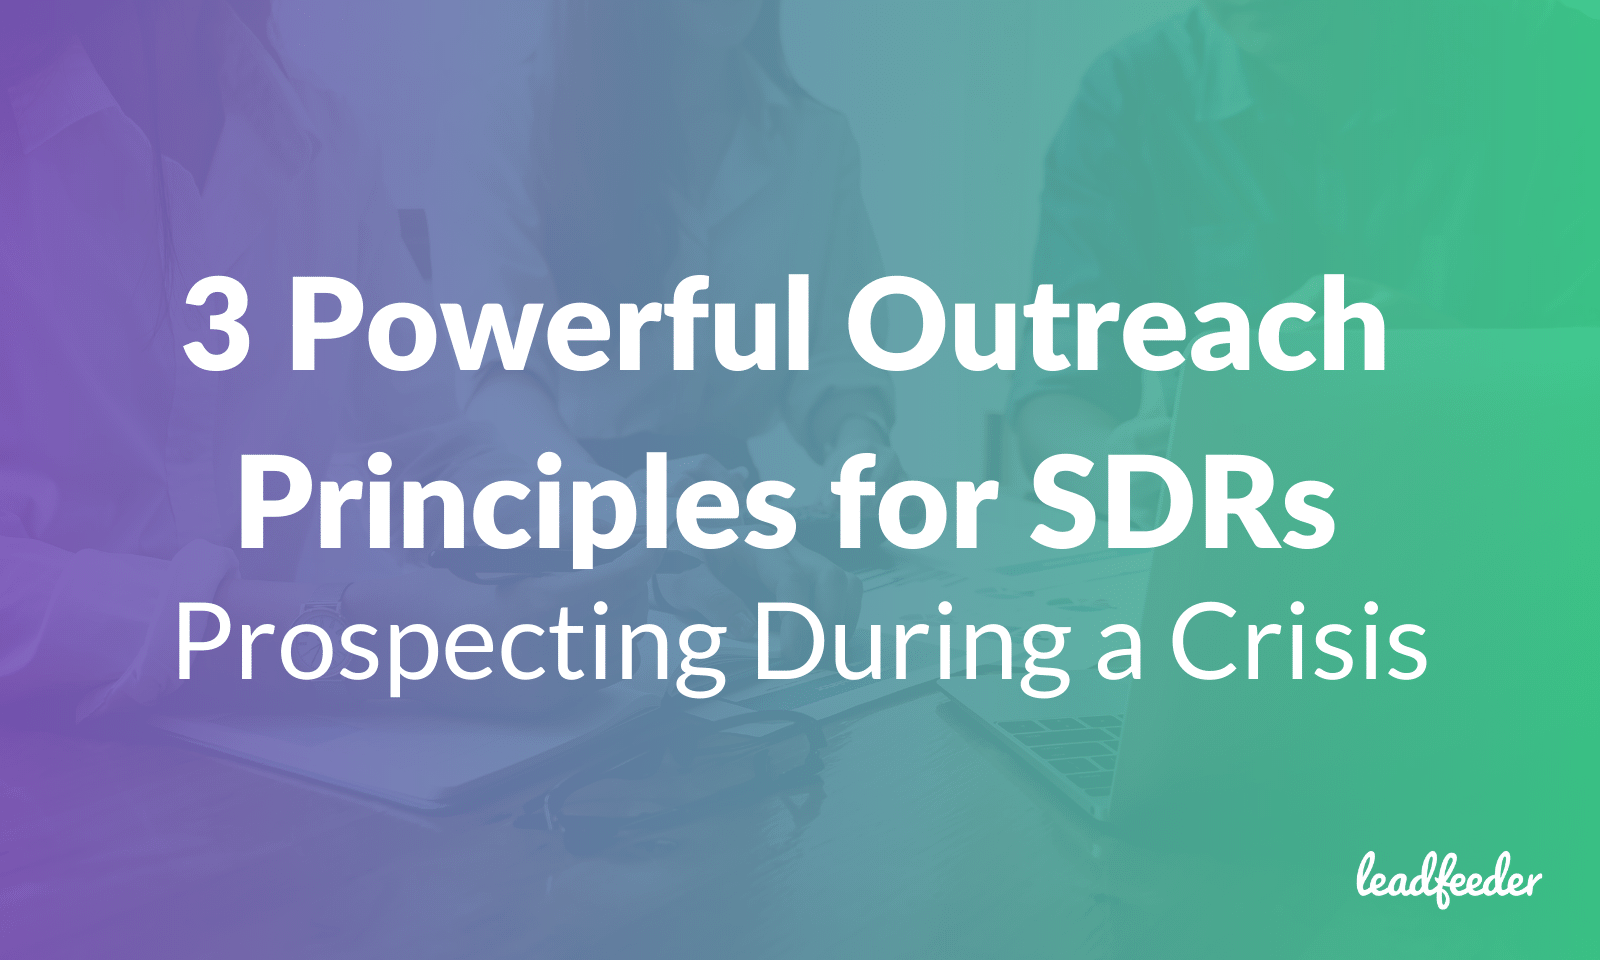 SDR outreach during COVID-19